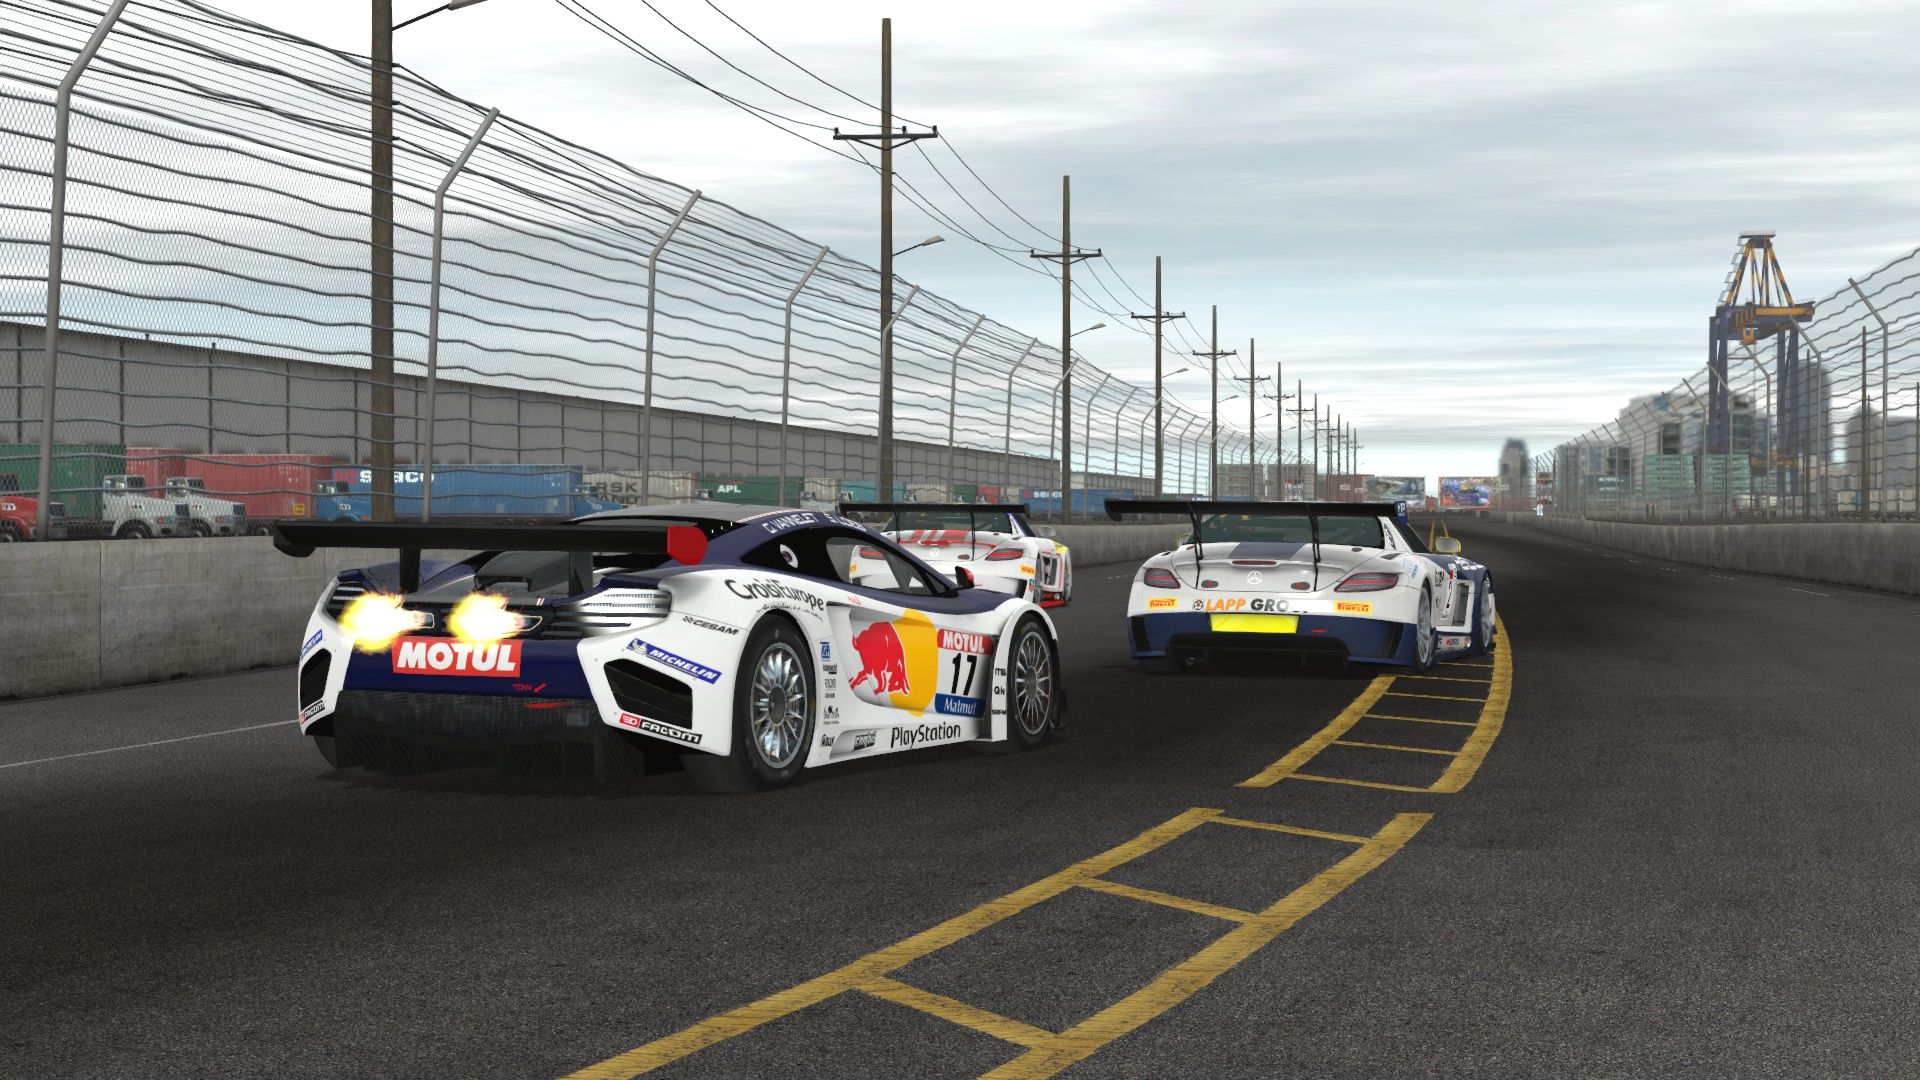 FIA GT3 for rFactor 2 – New Version Released – VirtualR net – 100